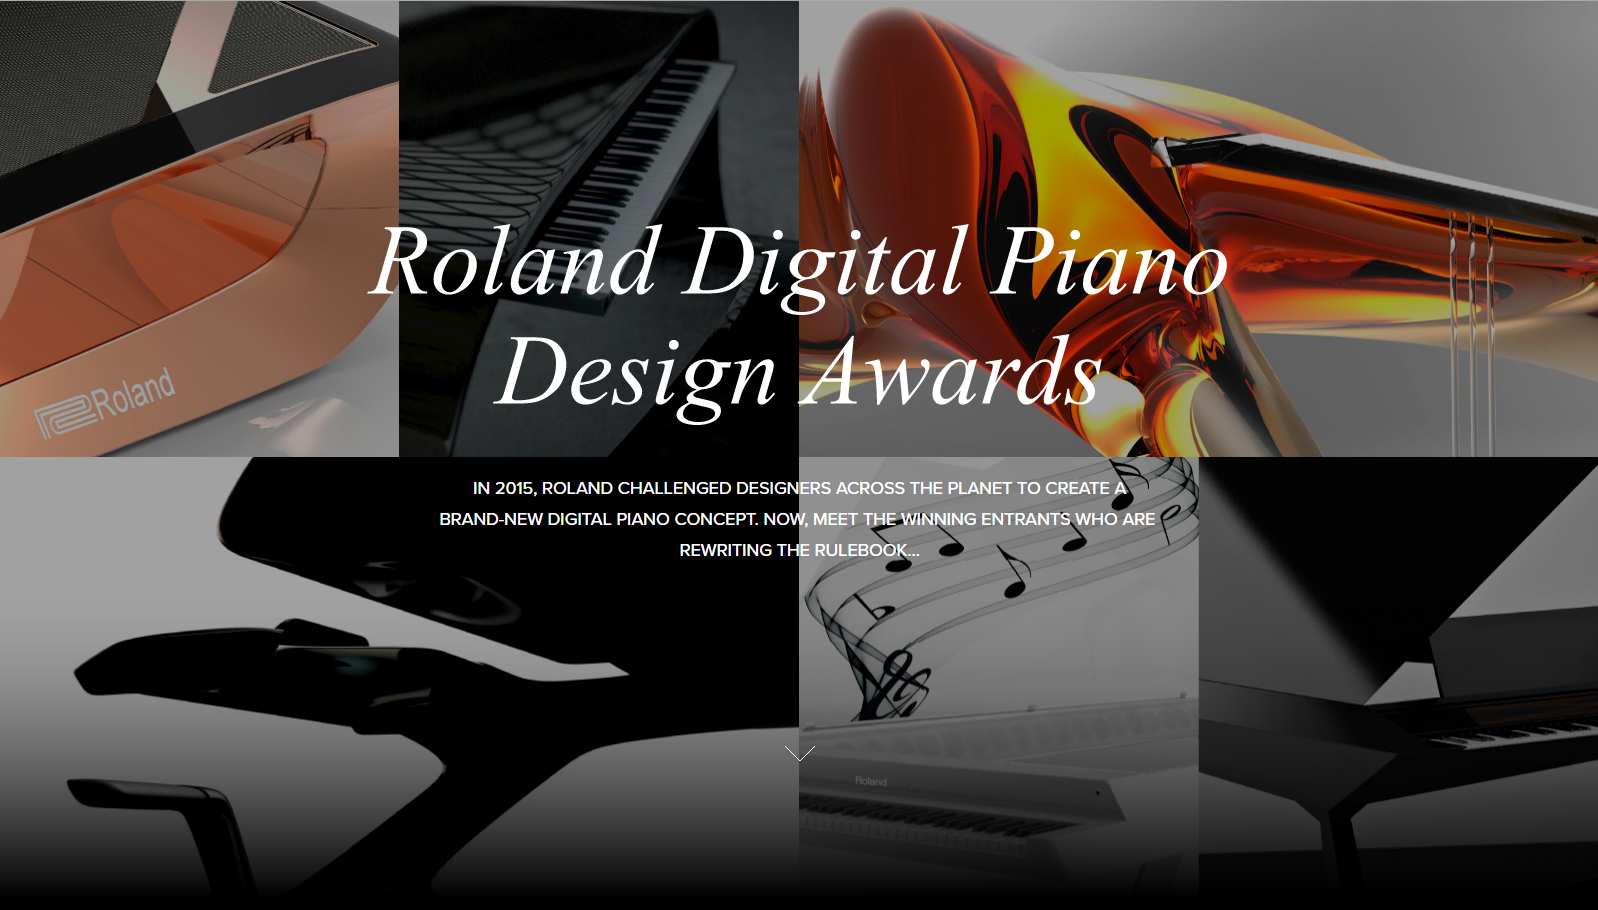 roland look for the 39 future of piano 39 with unique designs in award competition routenote blog. Black Bedroom Furniture Sets. Home Design Ideas